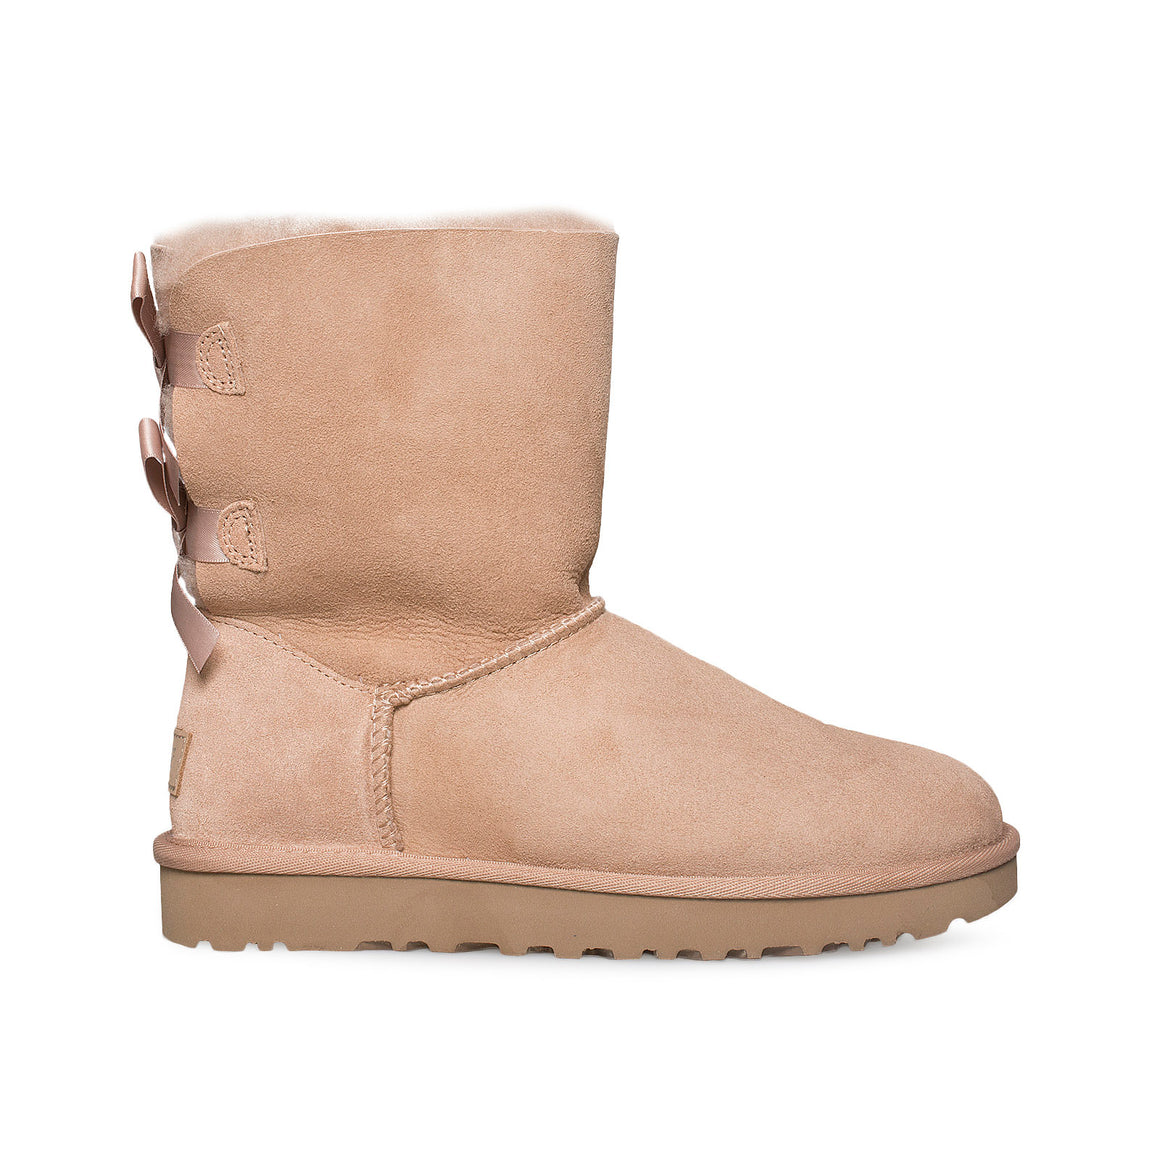 UGG Bailey Bow II Arroyo Boots - Women's